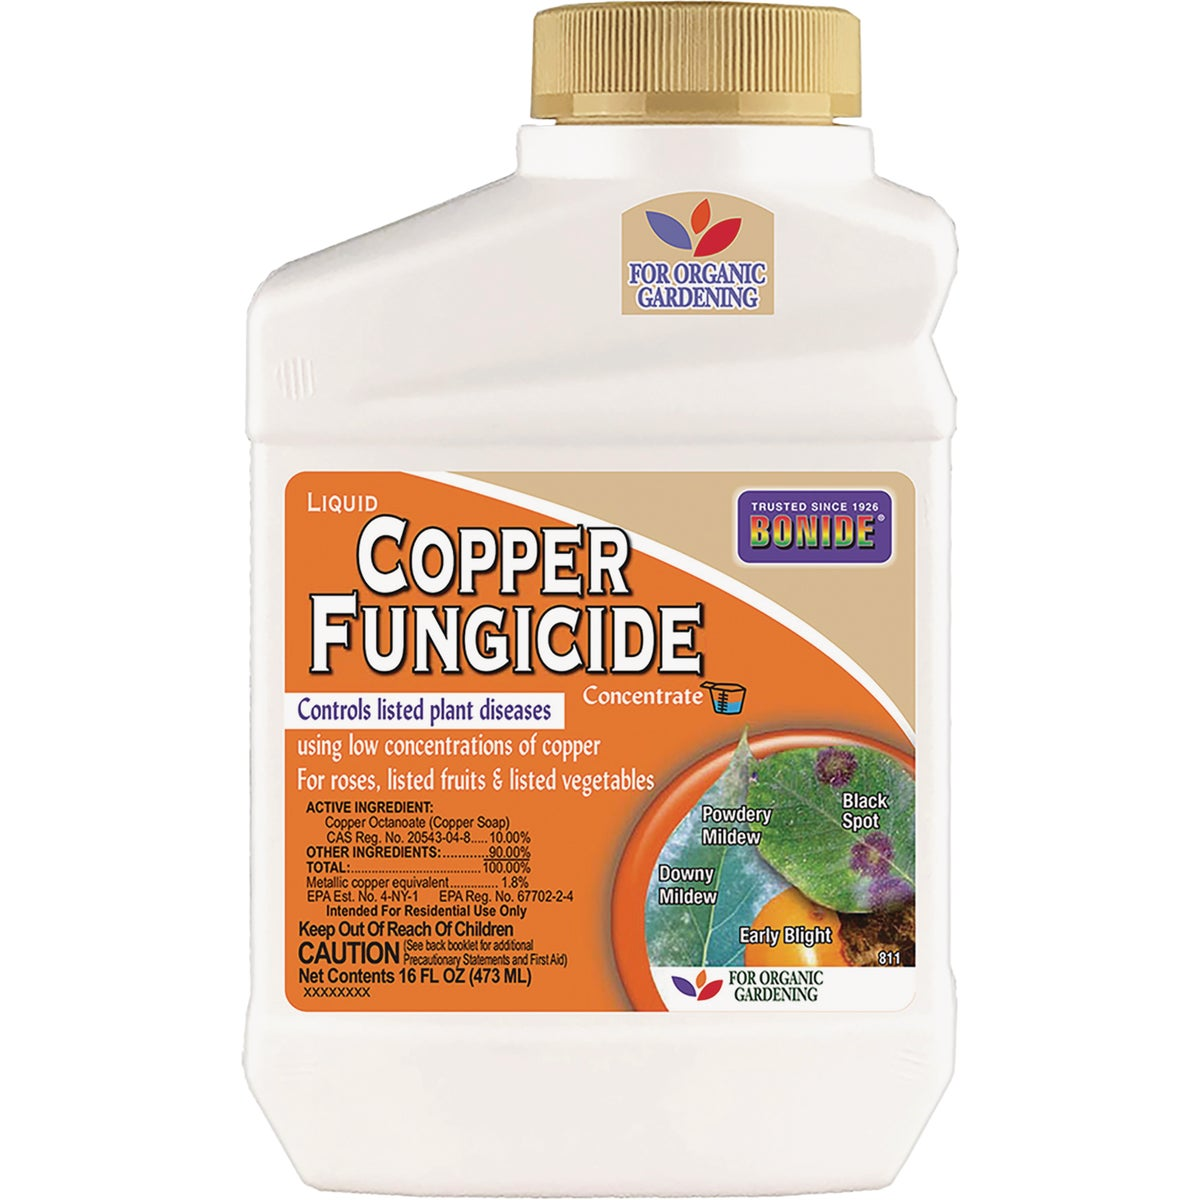 COPPER FUNGICIDE - 811 by Bonide